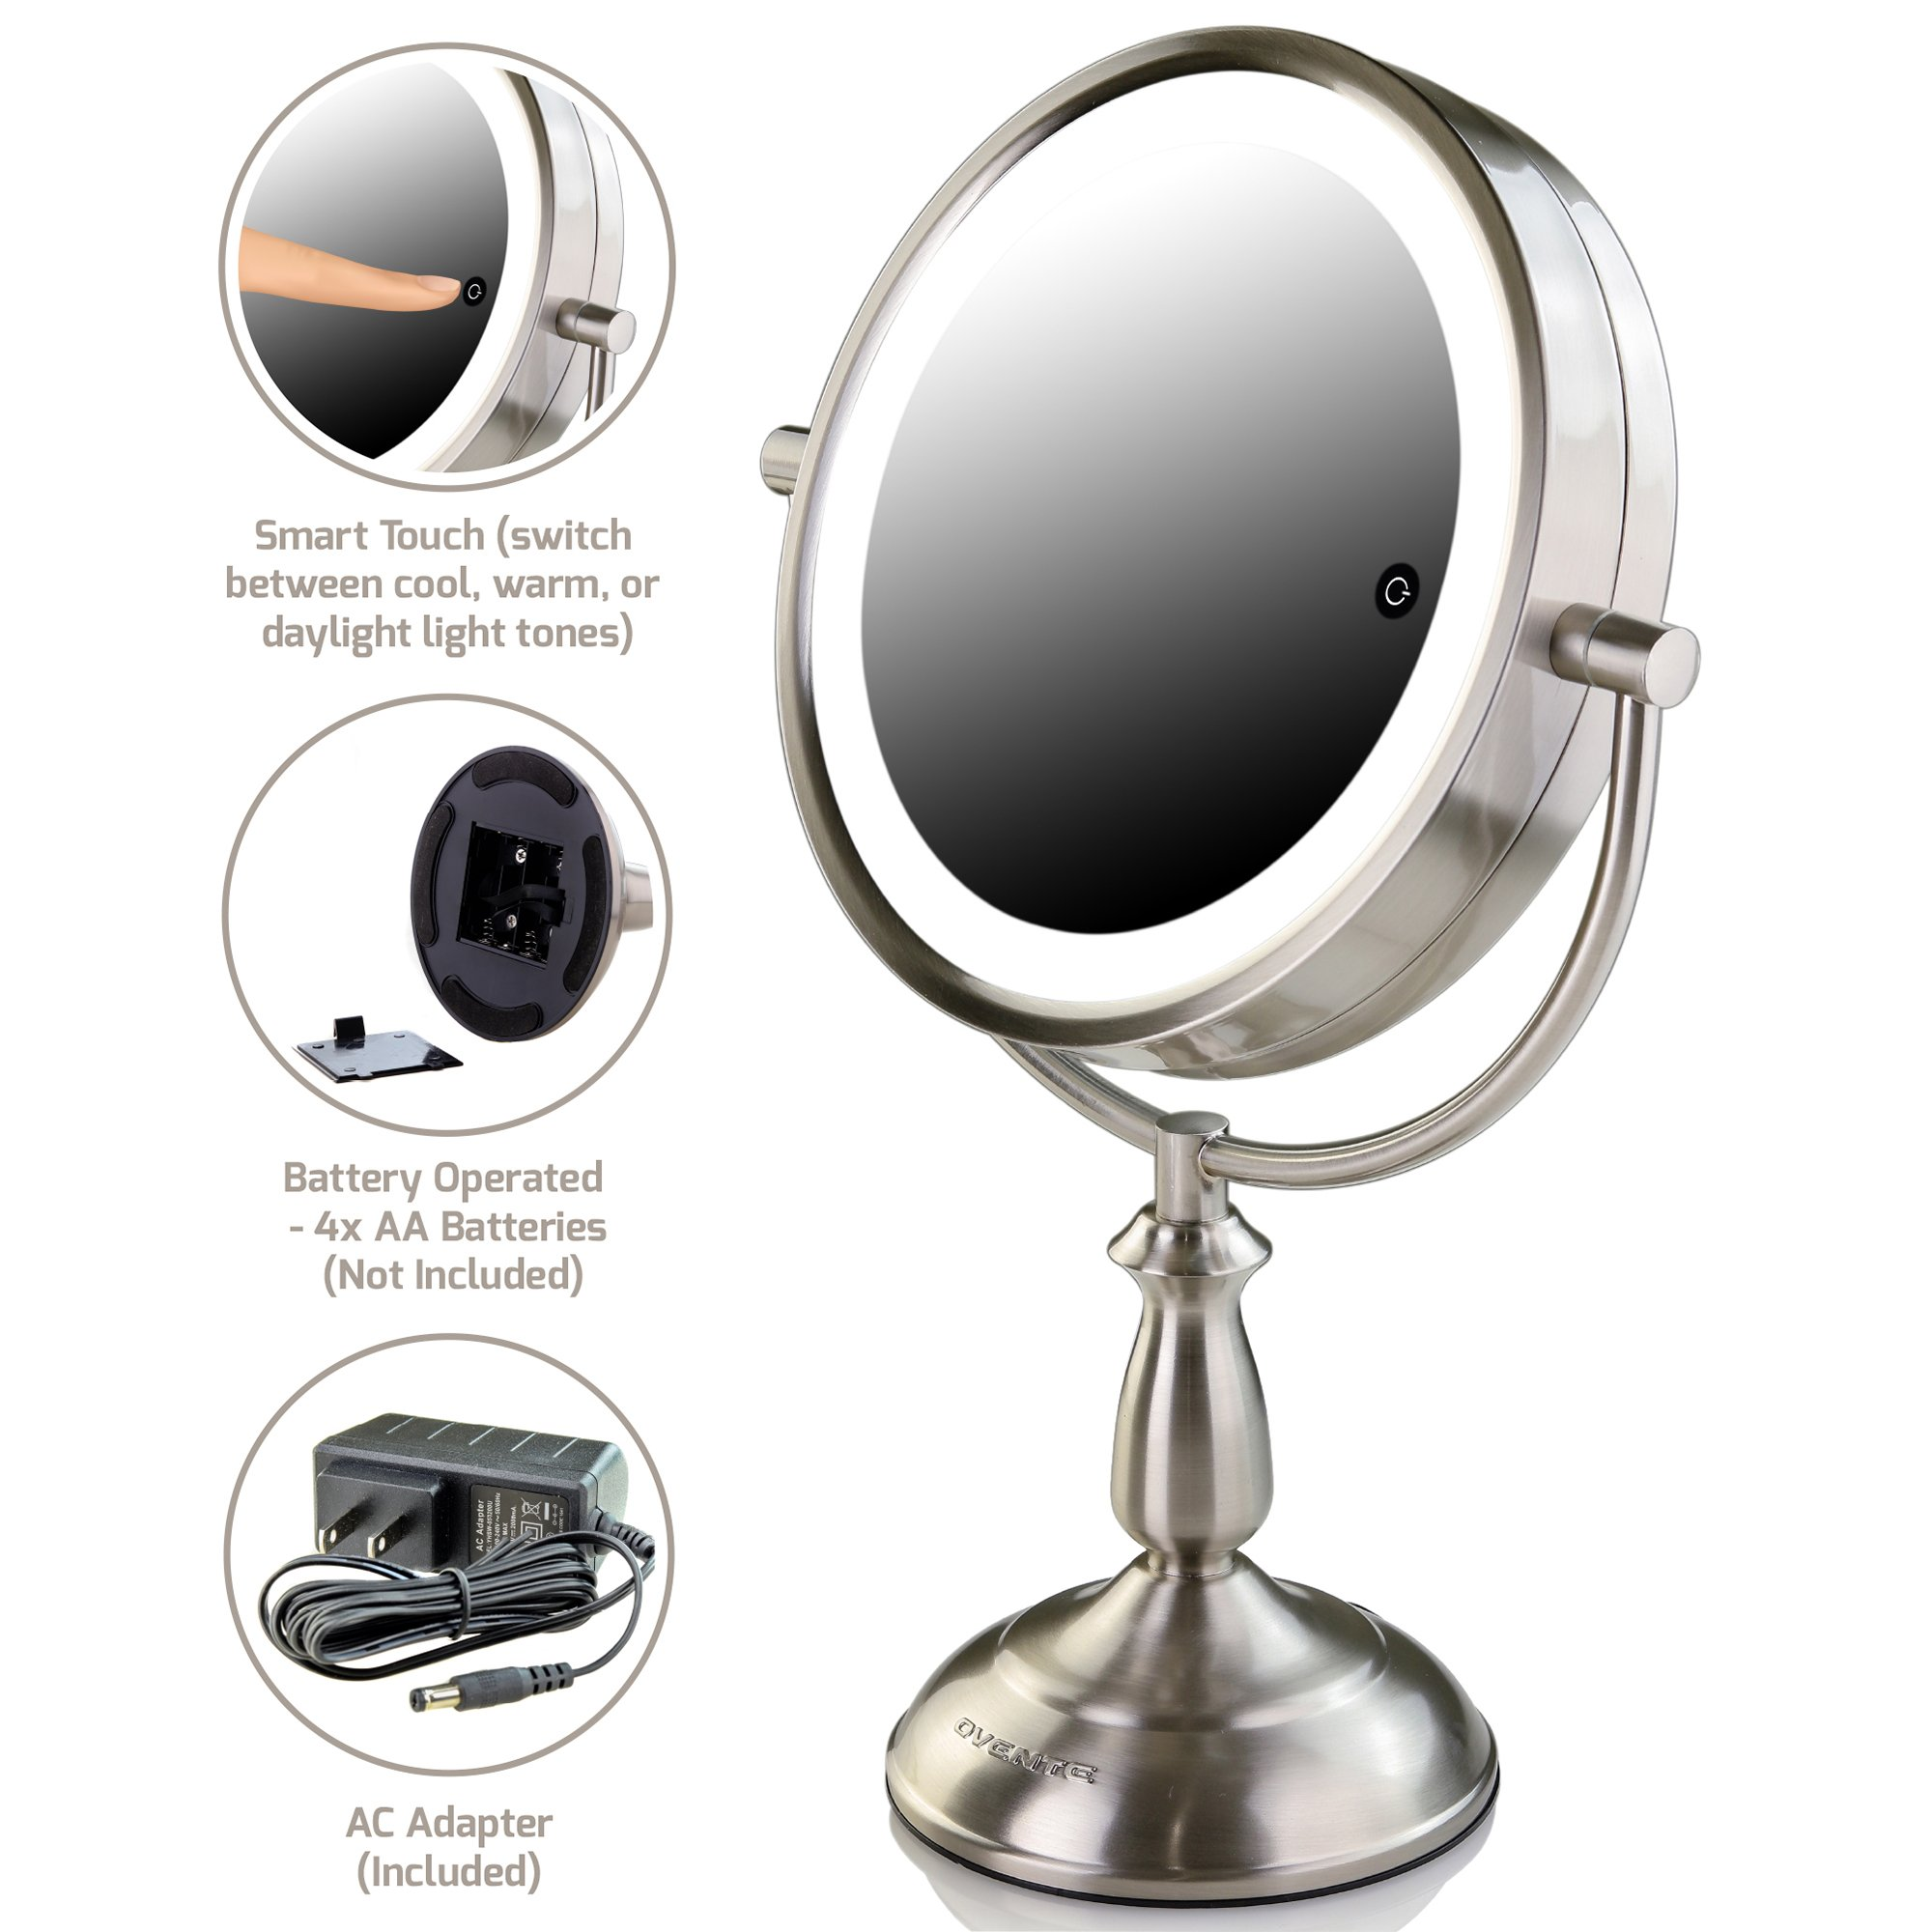 Ovente 7.5'' Lighted Tabletop Mirror, SmartTouch Cool, Warm, Daylight LED Tones (1X5X, Brushed)